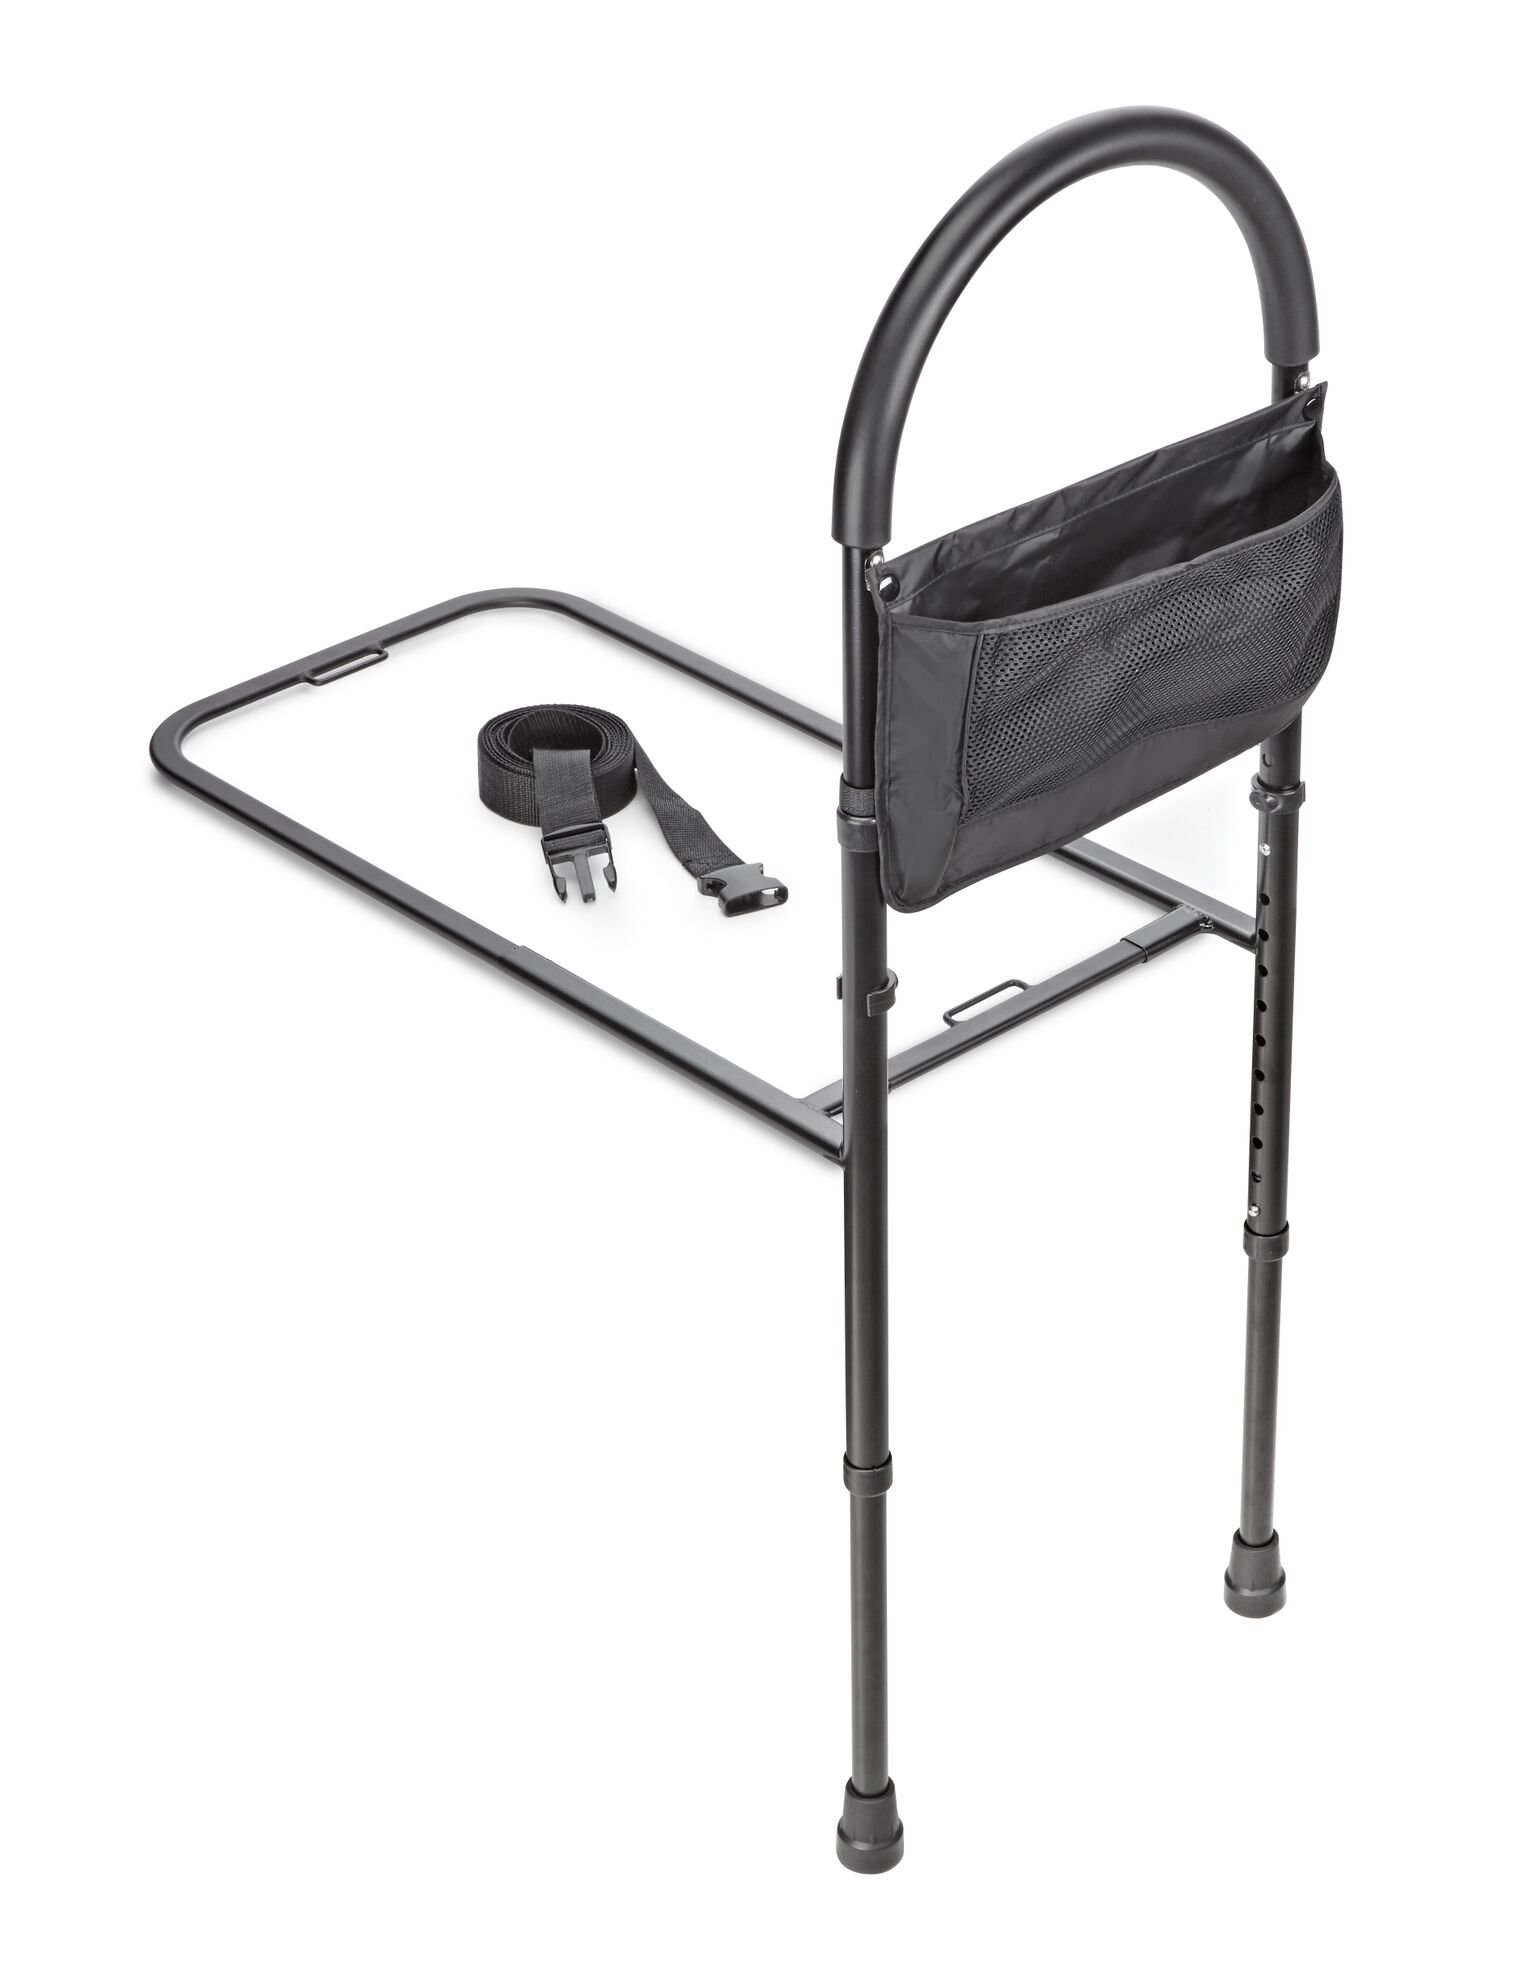 AdirMed Height Adjustable Bed Rail - Bed Assist Handle- with Storage Pouch